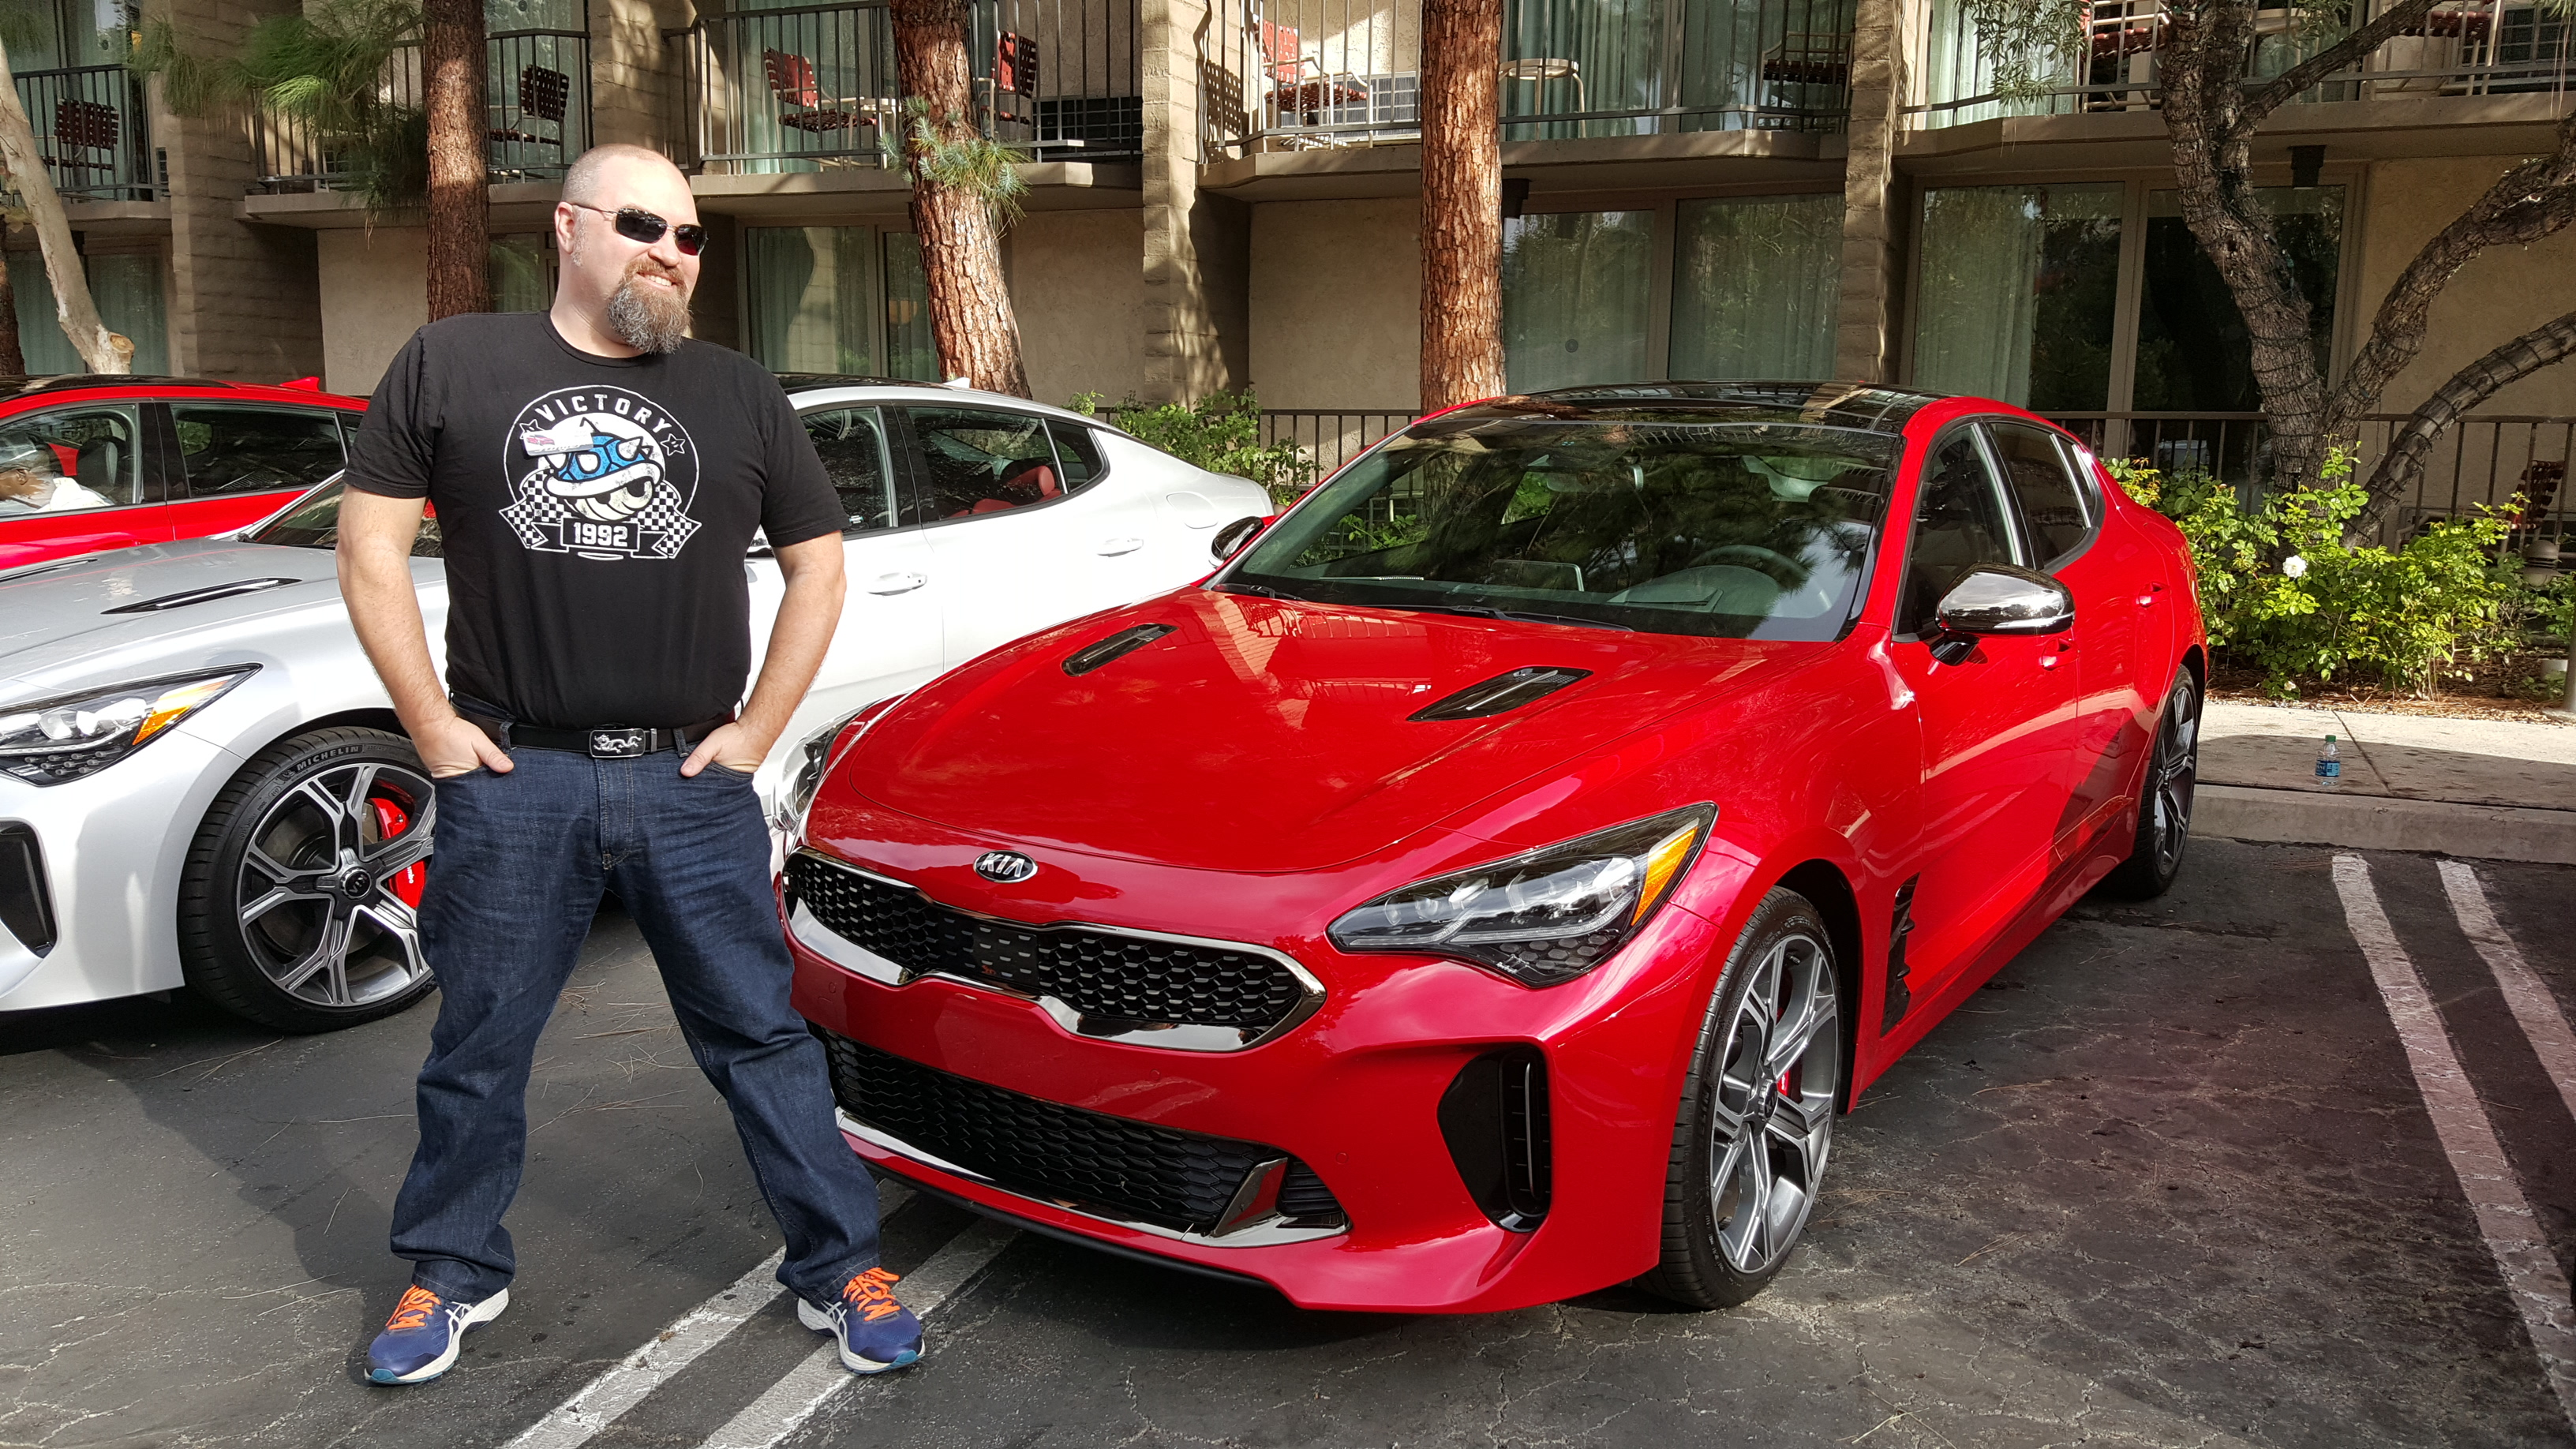 The Kia Stinger Adventure Begins – #KiaStinger #StingerIsHere